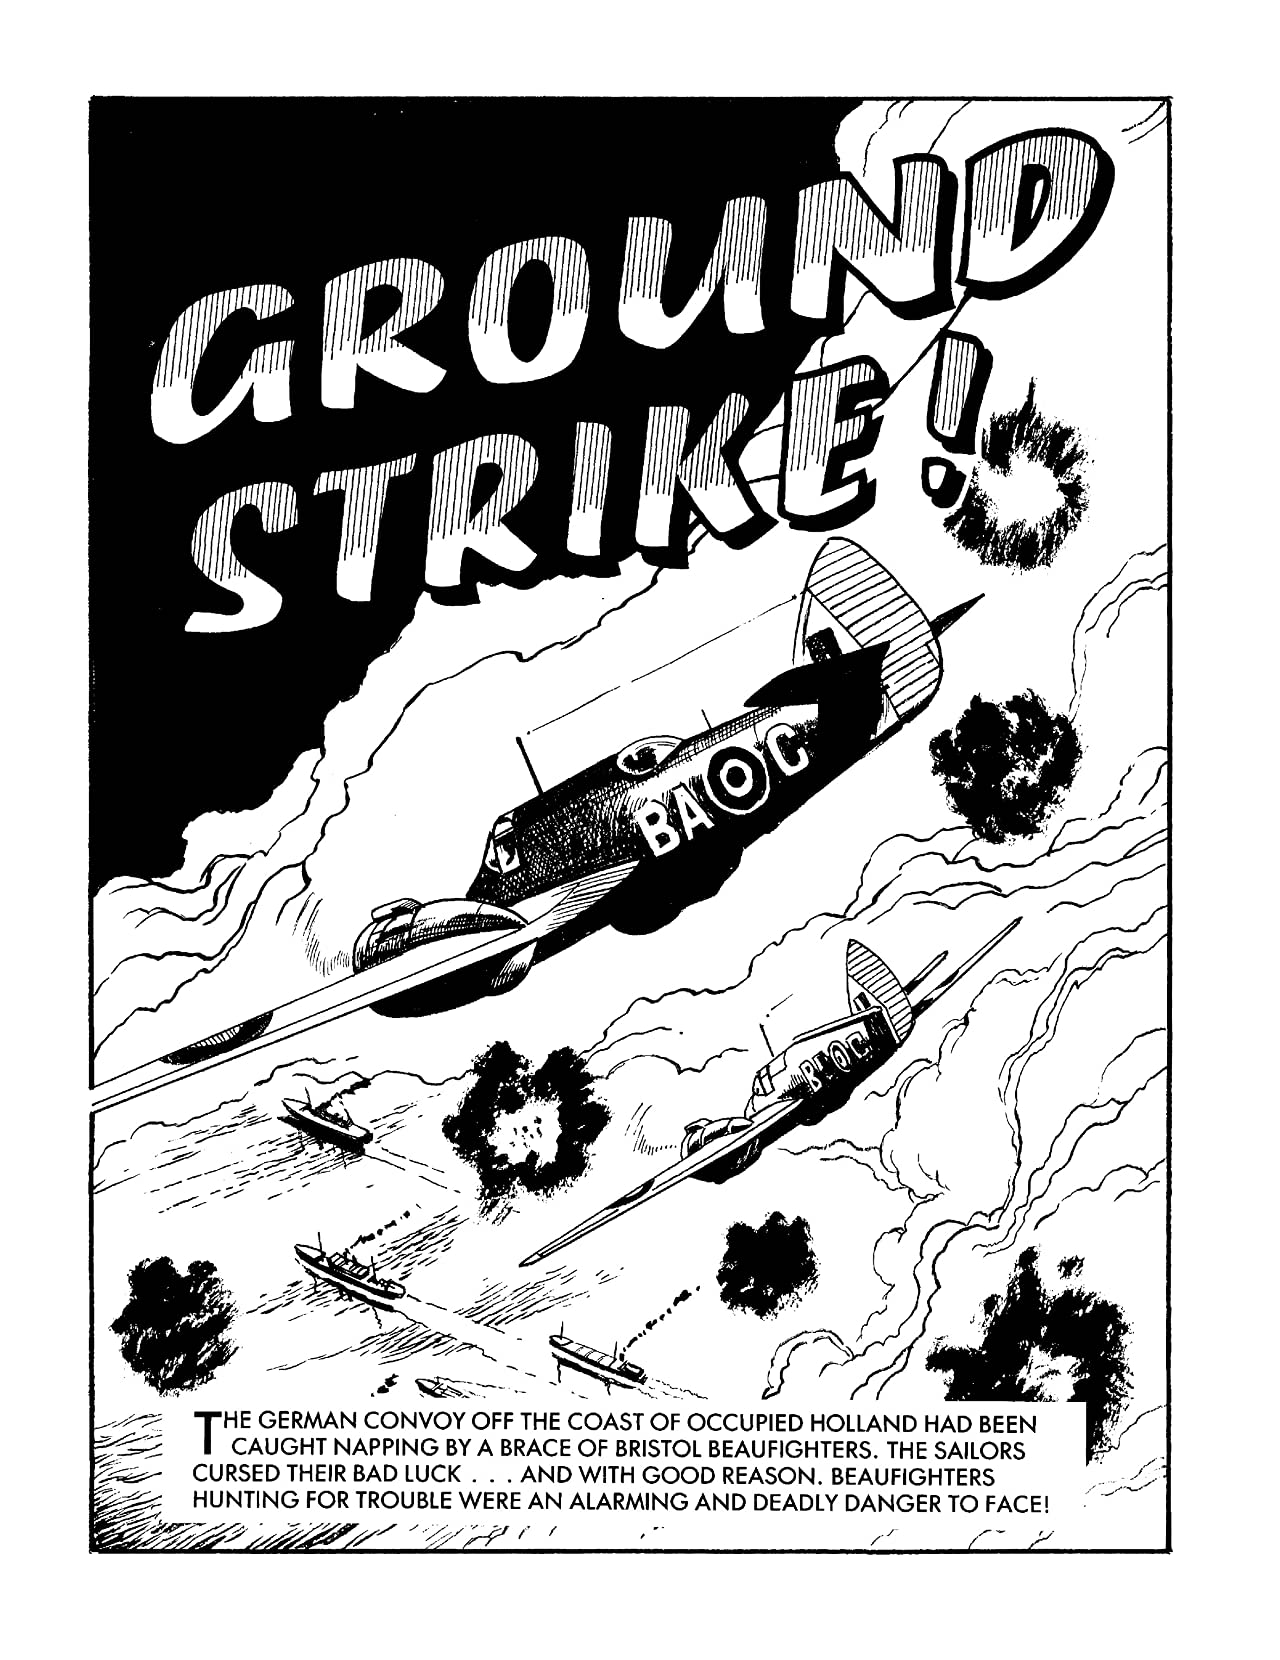 Commando #4994: Ground Strike!